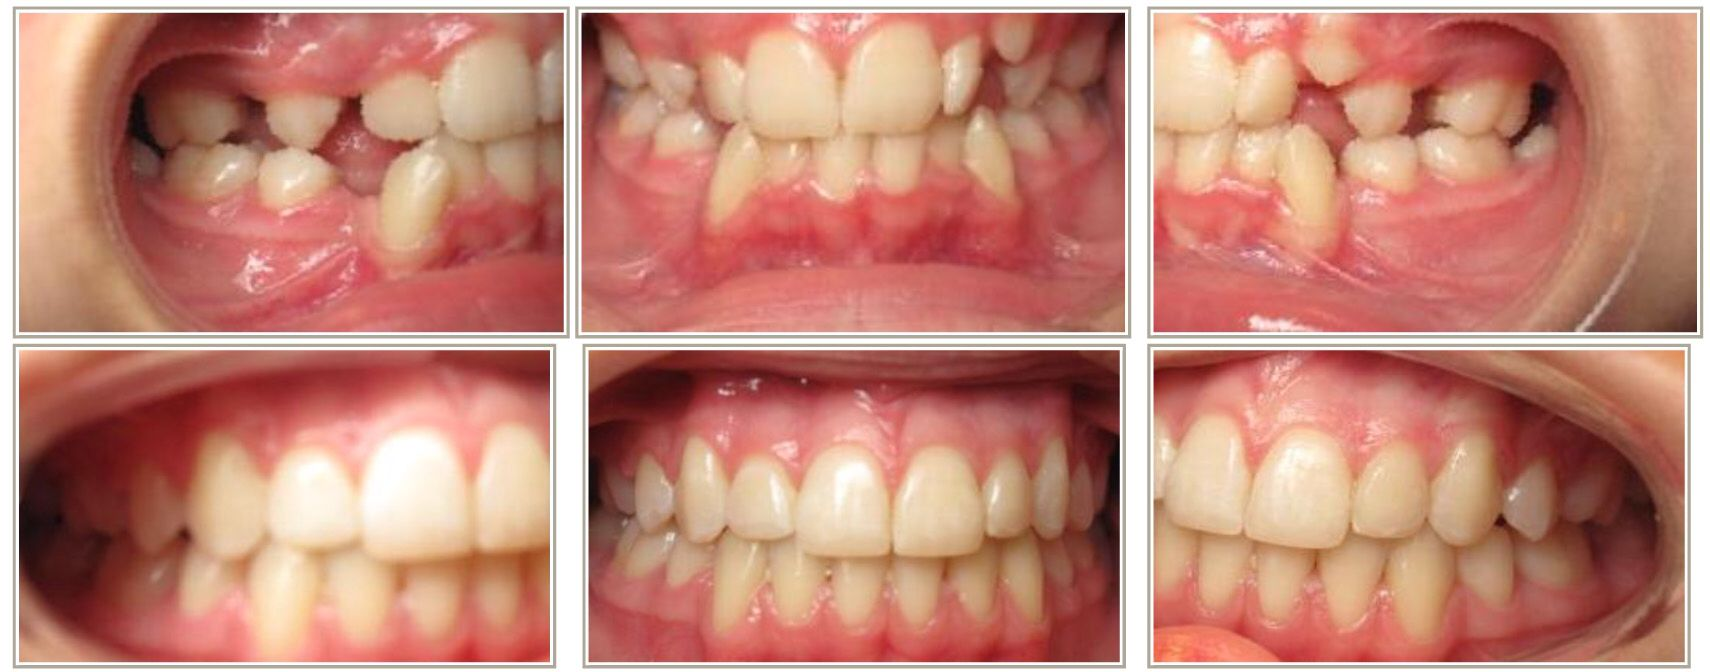 Severe crowding extraction case notice after alignment with notice after alignment with braces you cannot tell our beautiful patient had extractions solutioingenieria Images